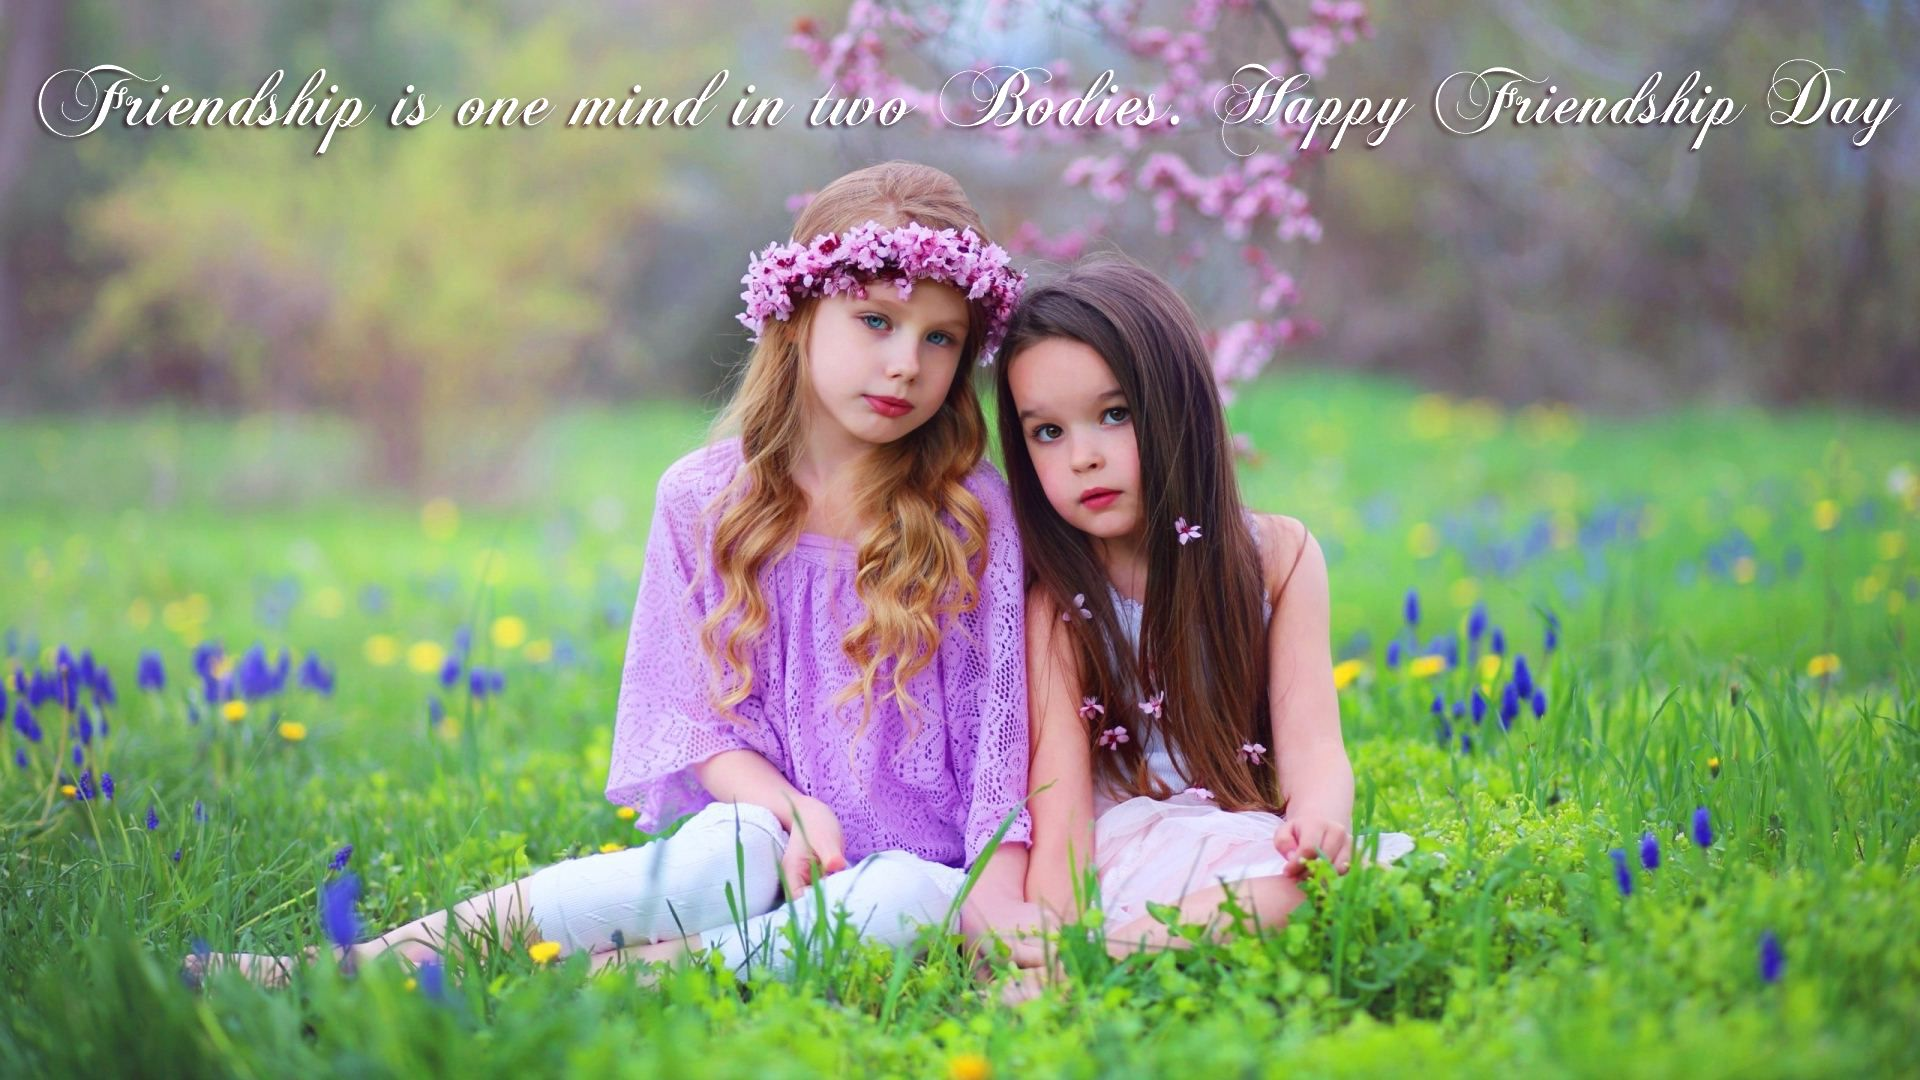 Cute Girls Friends Forever HD Wallpaper Happy, Friendship ...